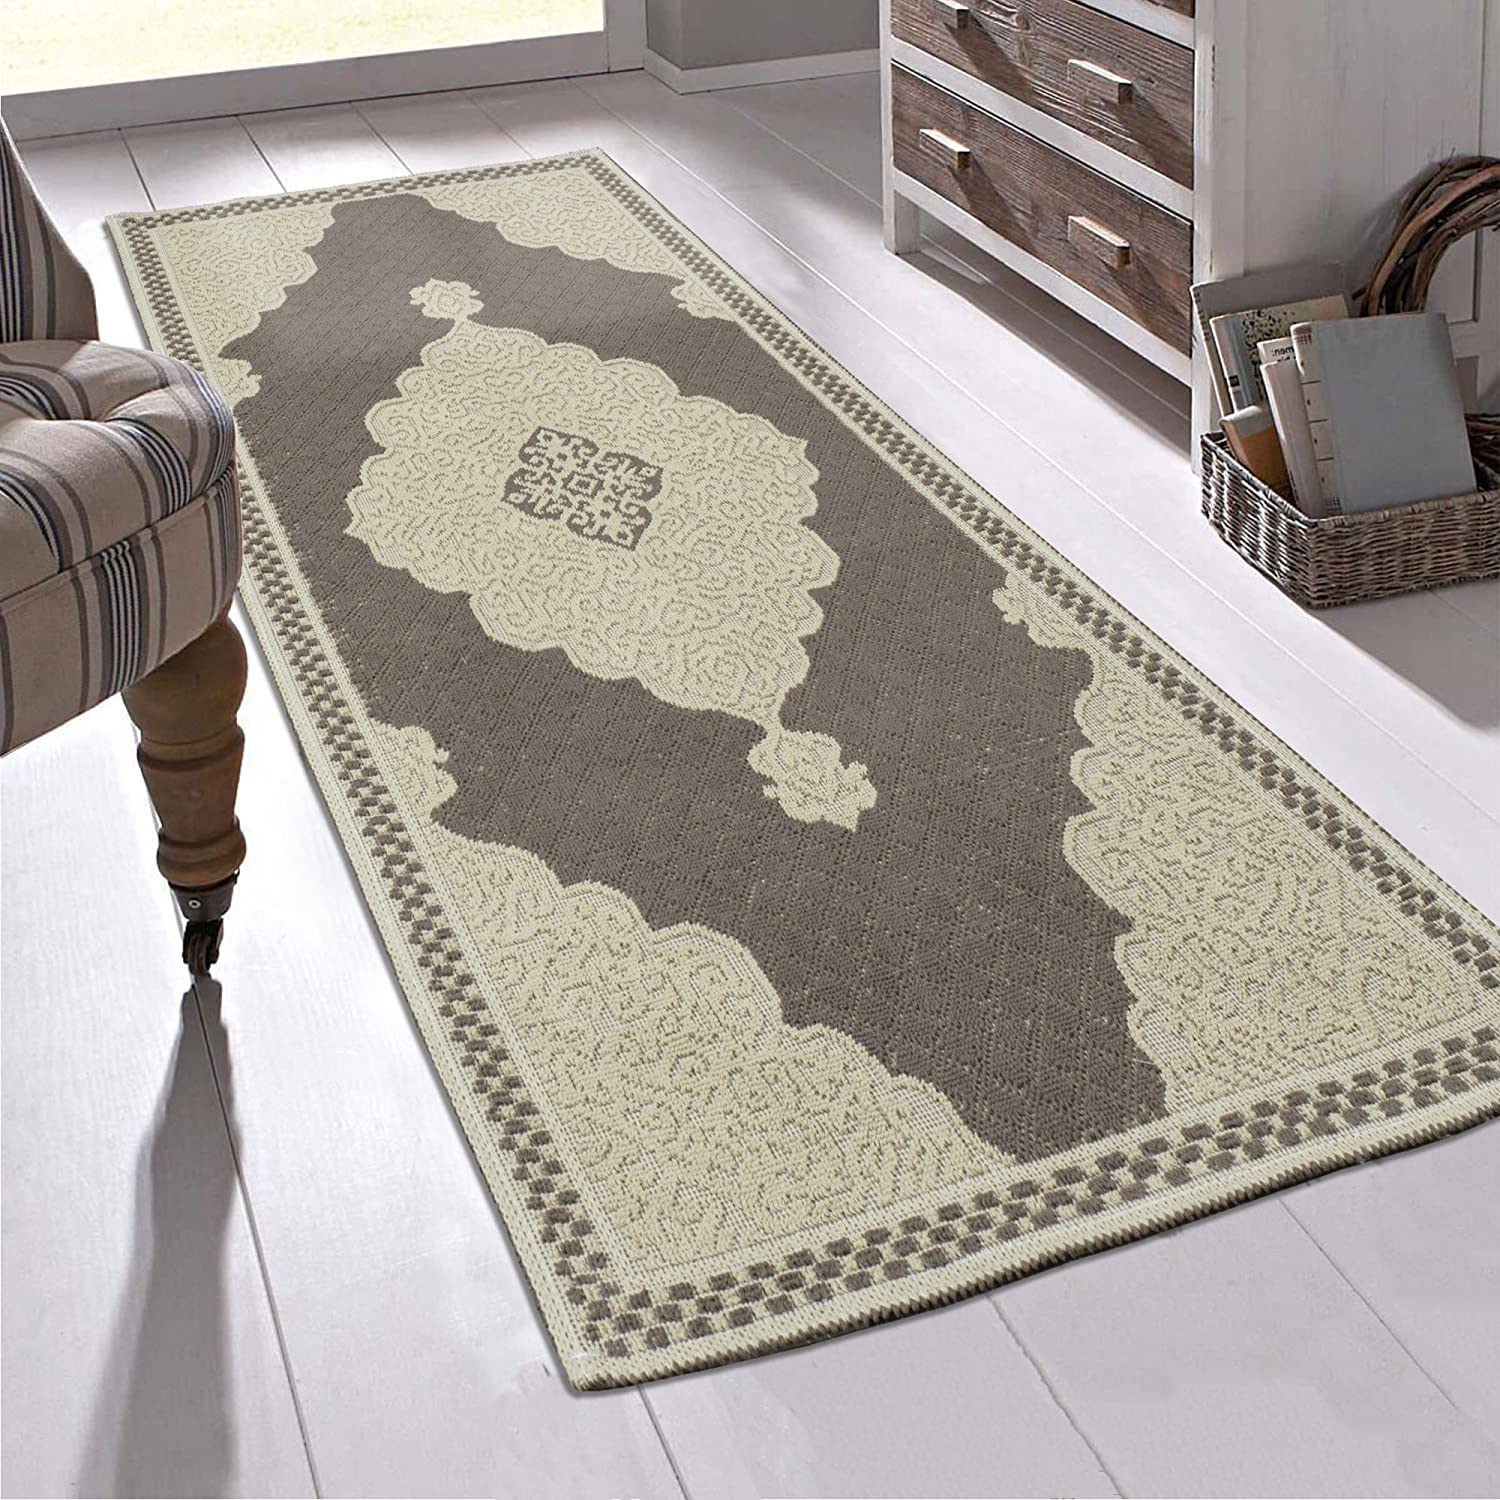 Ottomanson K11498-3X6 Nature Cotton Kilim Collection Brown Medallion Design 2'7' X 6'0' Area Rug